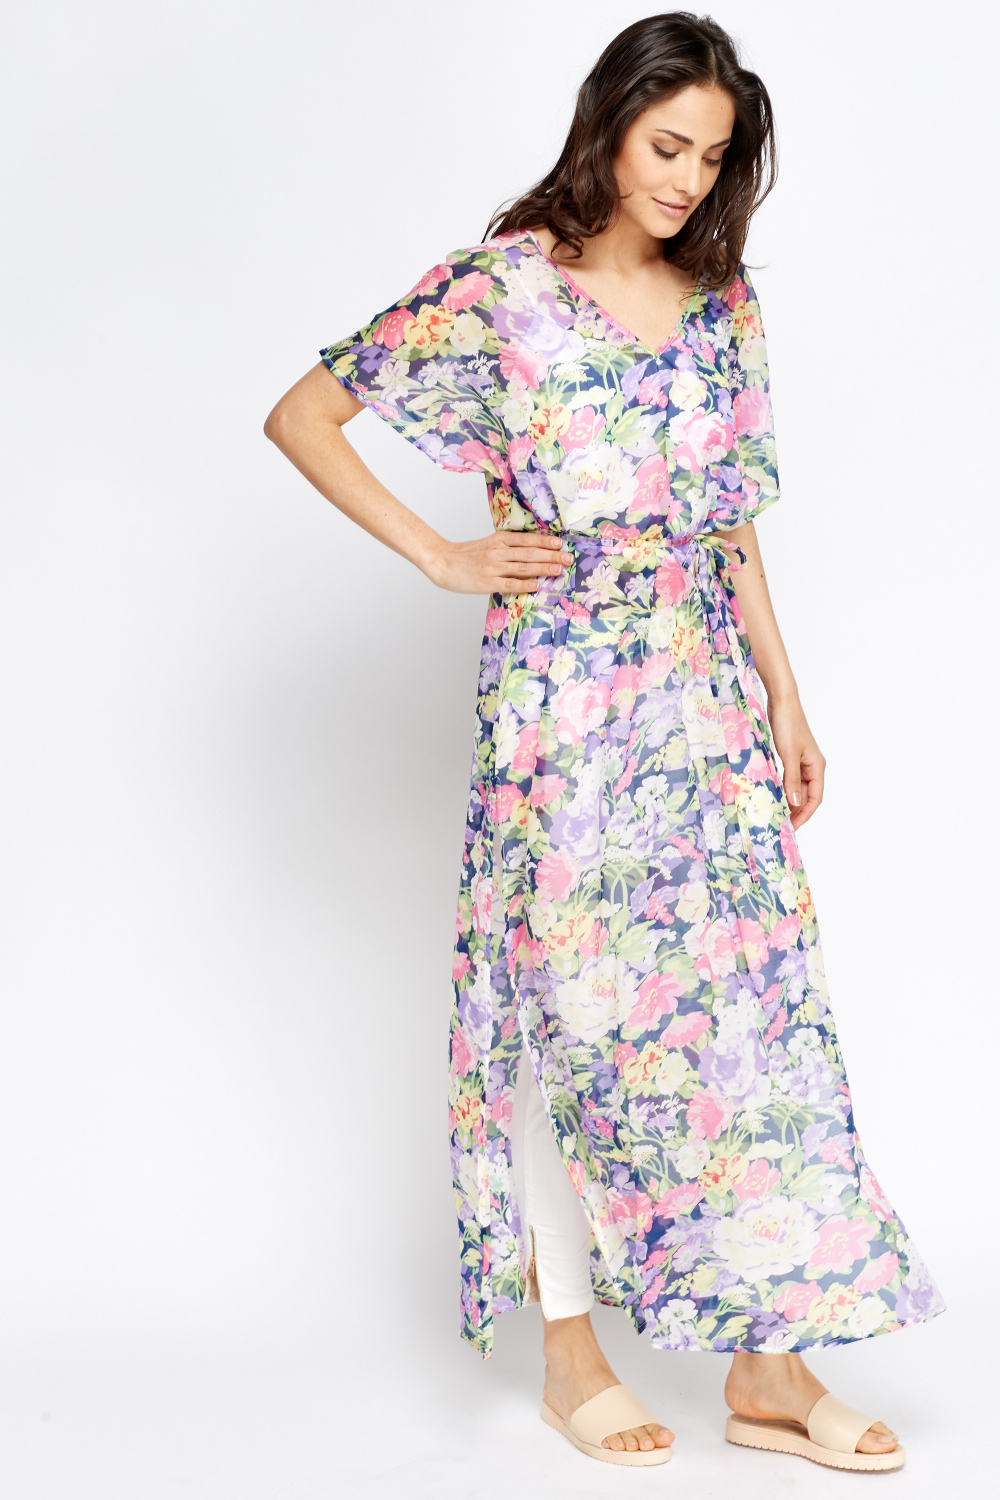 c6b0244f6 Floral Multi Colour Sheer Beach Cover Up - Just £5